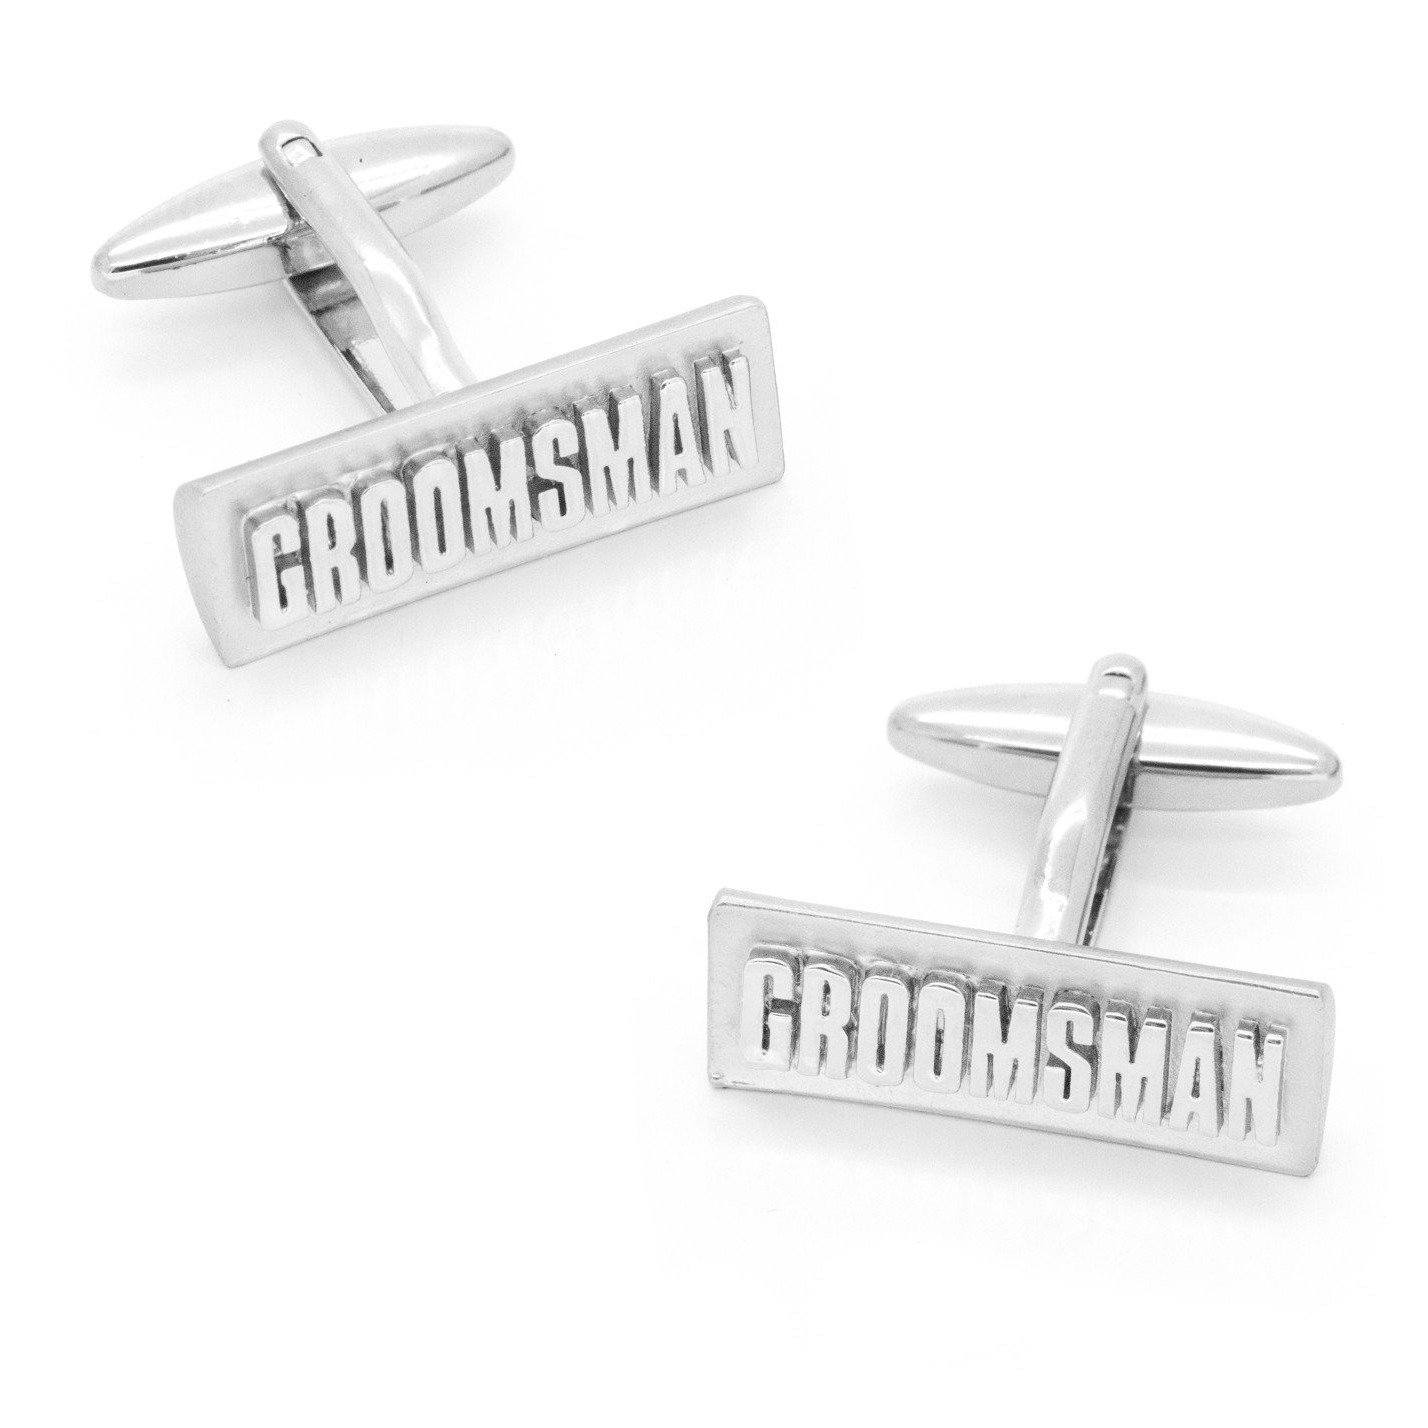 Groomsman Raised Lettering Cufflinks, Wedding Cufflinks, Cuffed.com.au, CL9552, $29.00